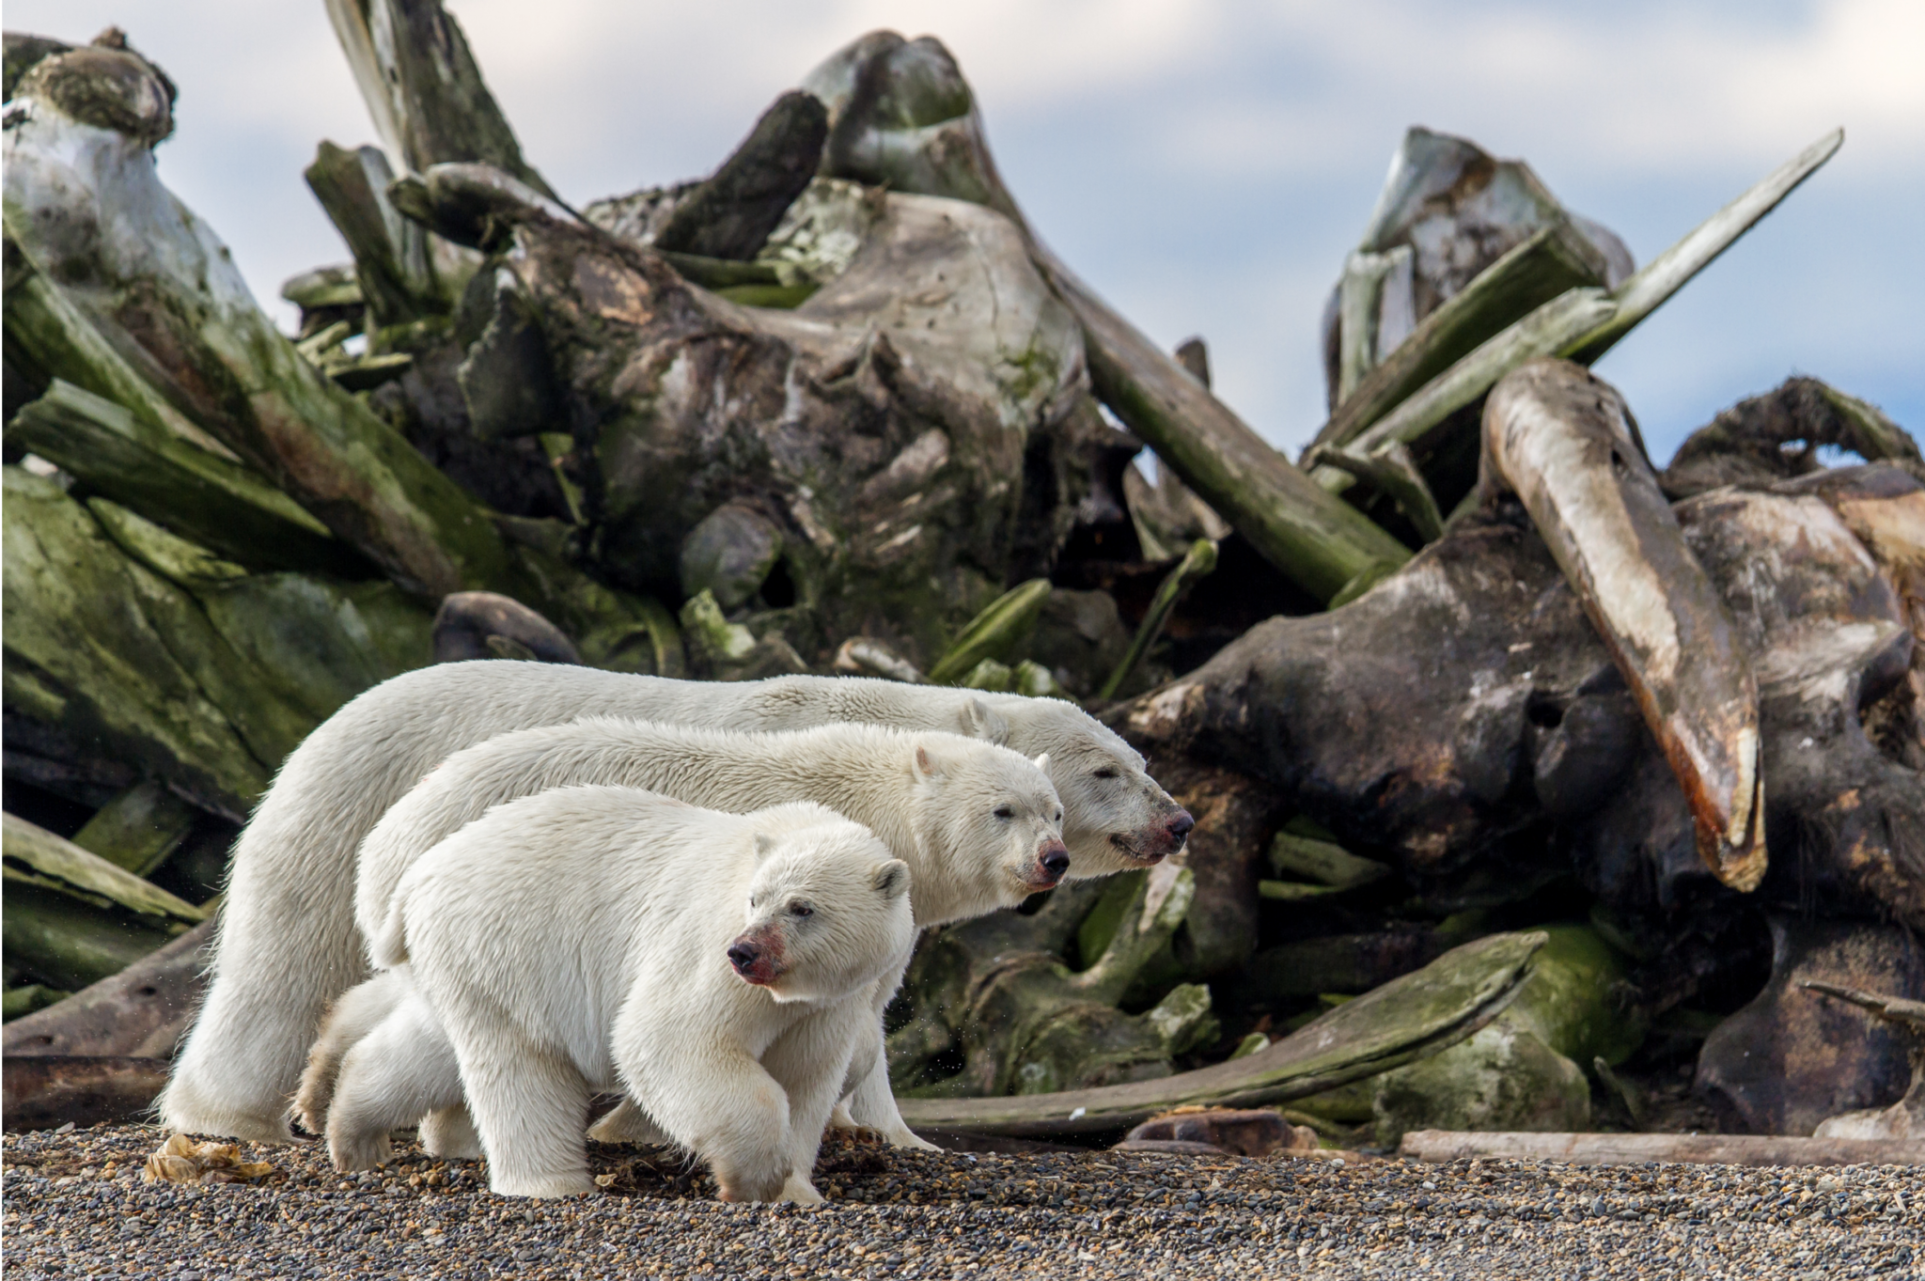 PHOTOS: Here Are Winning Photos From Cal Academy's New Show